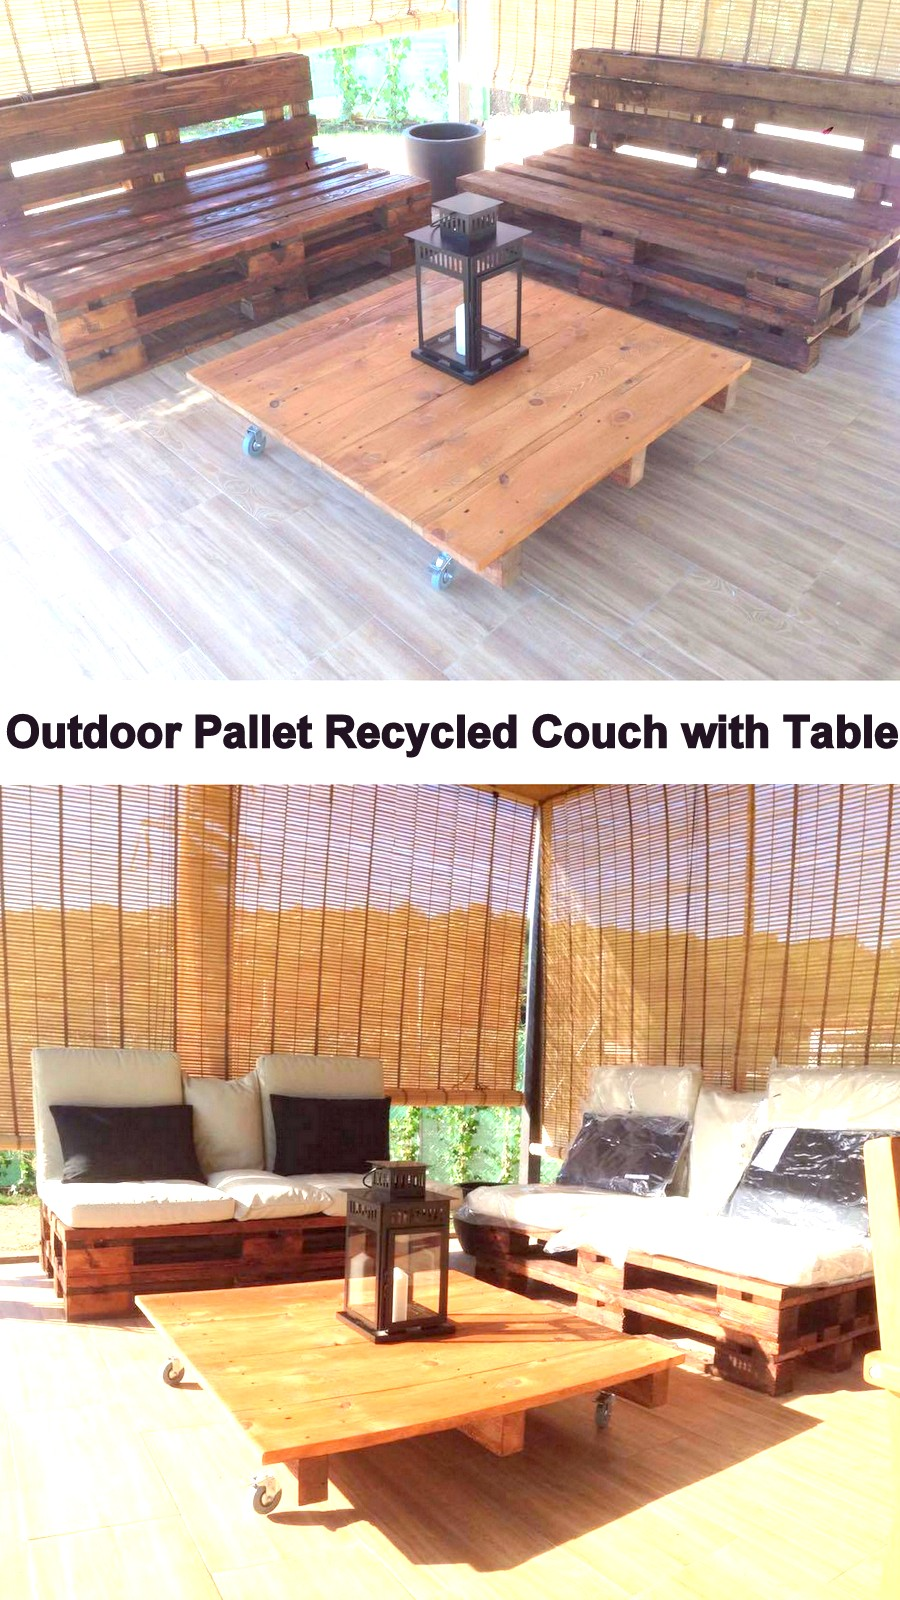 Outdoor Pallet Recycled Couch with Table